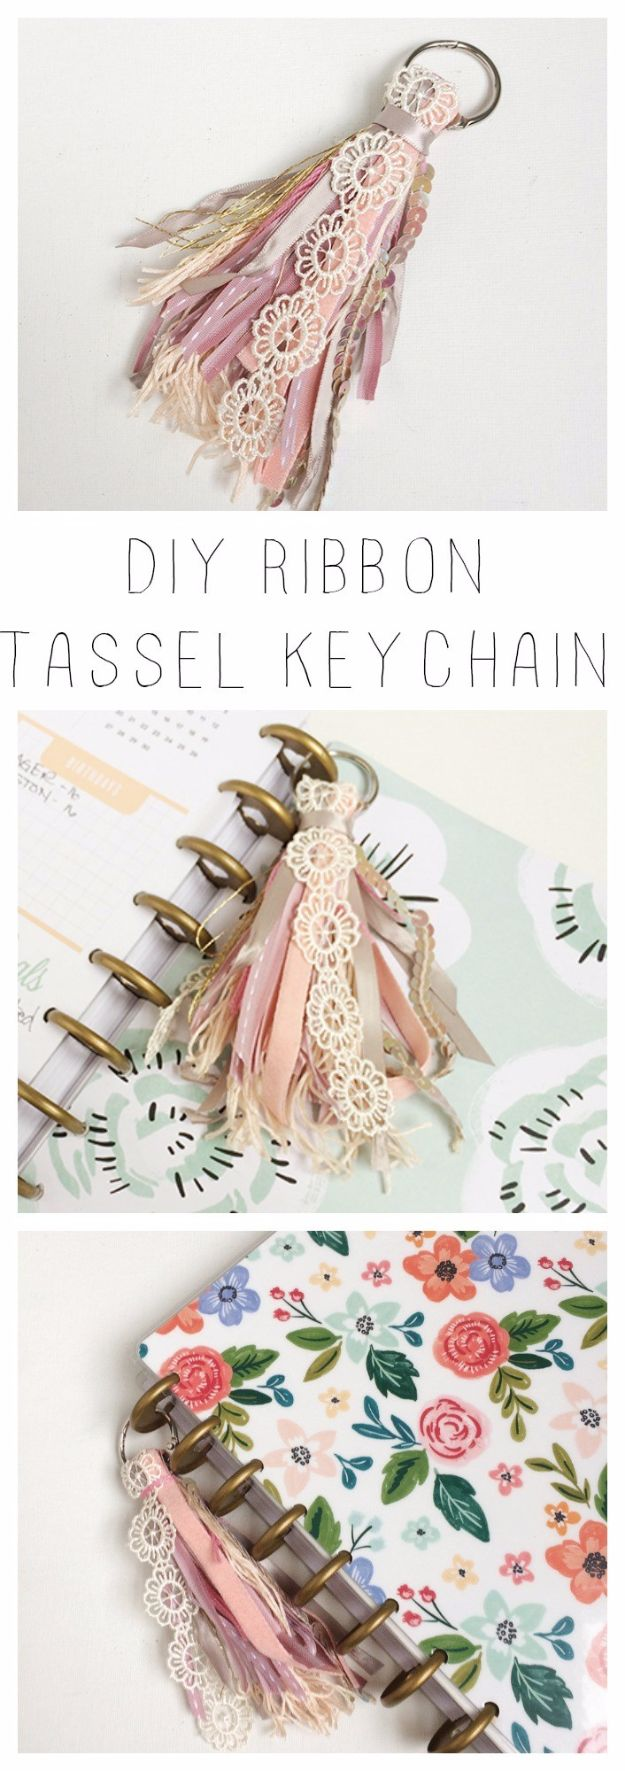 Crafts for Teens to Make and Sell - DIY Ribbon Tassel Key Chain - Cheap and Easy DIY Ideas To Make For Extra Money - Best Things to Sell On Etsy, Dollar Store Craft Ideas, Quick Projects for Teenagers To Make Spending Cash - DIY Gifts, Wall Art, School Supplies, Room Decor, Jewelry, Fashion, Hair Accessories, Bracelets, Magnets #teencrafts #craftstosell #etsyideass